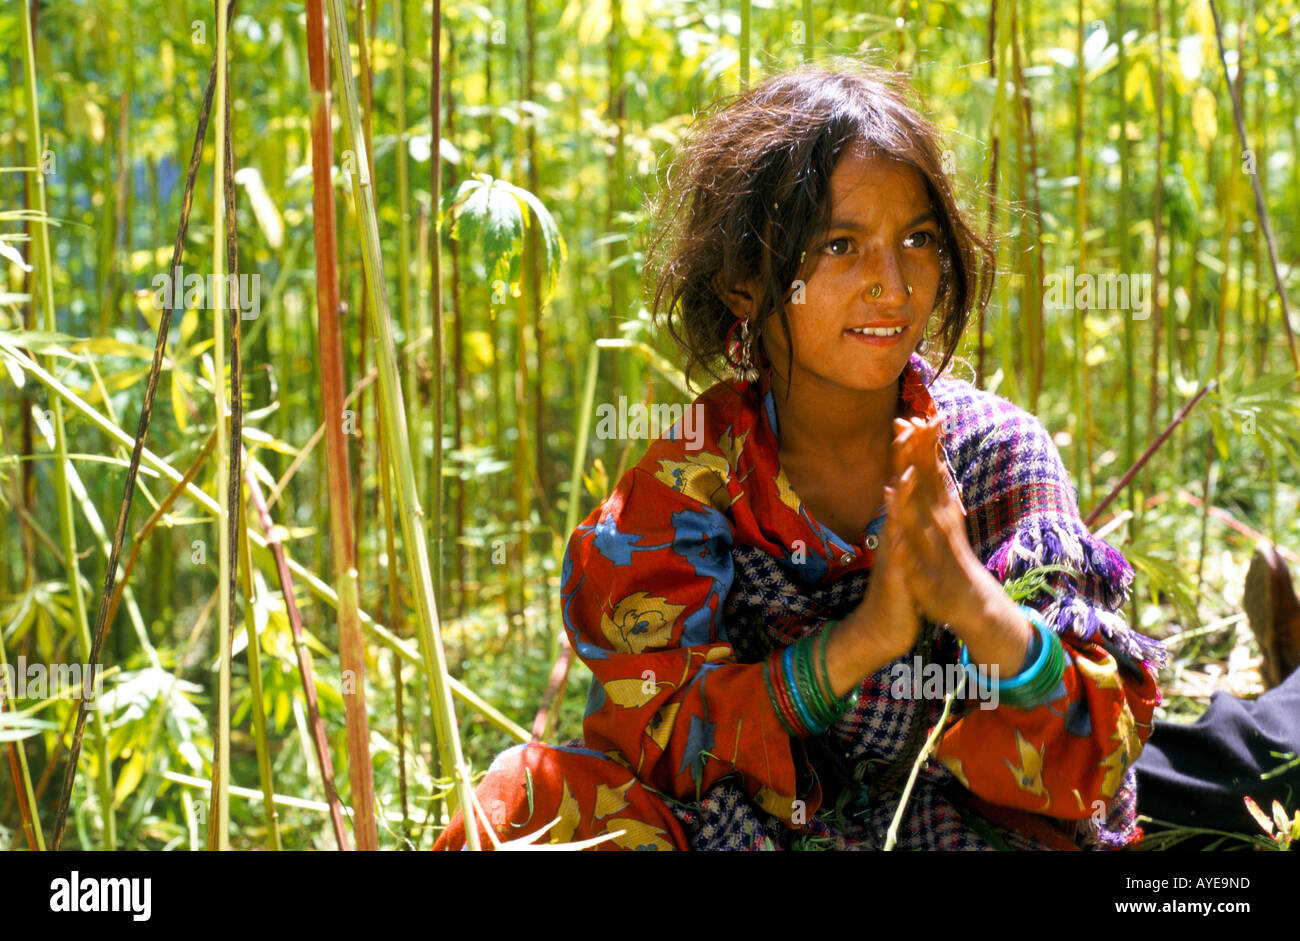 India Himachel Pradesh 1998 A young woman from Malana village rubs cannabis plants to extract the resin to make Stock Photo